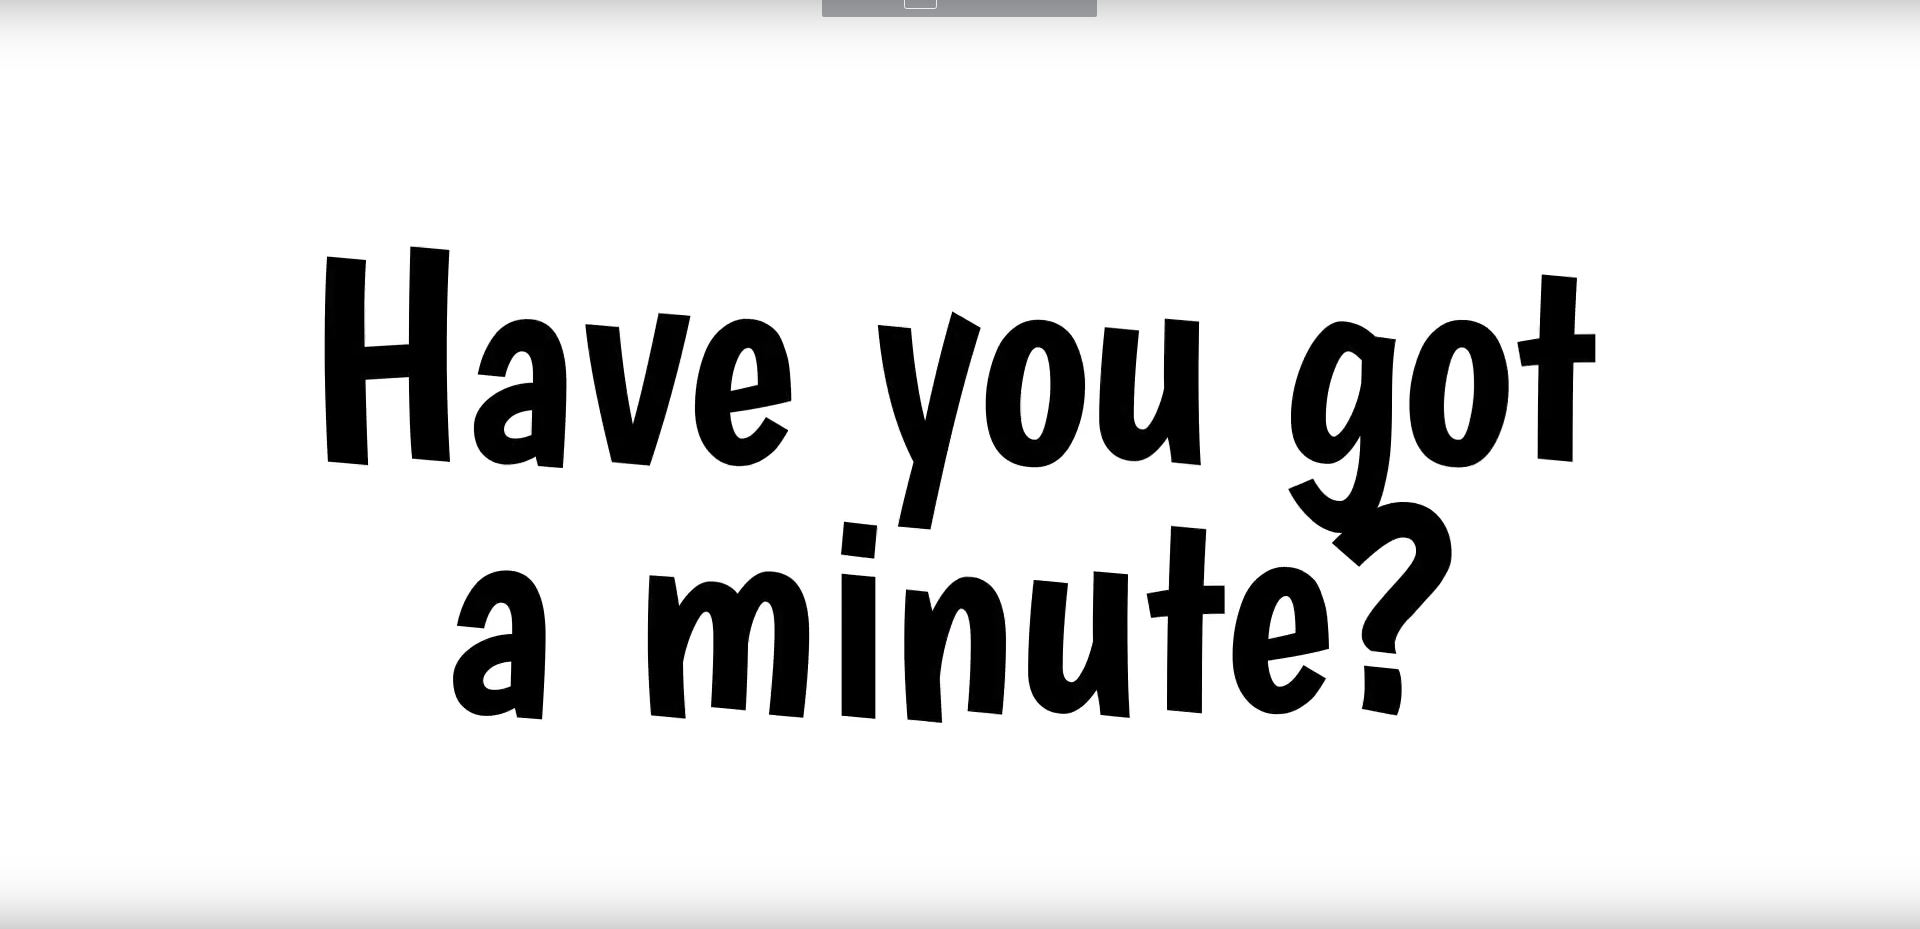 Have you got a minute?